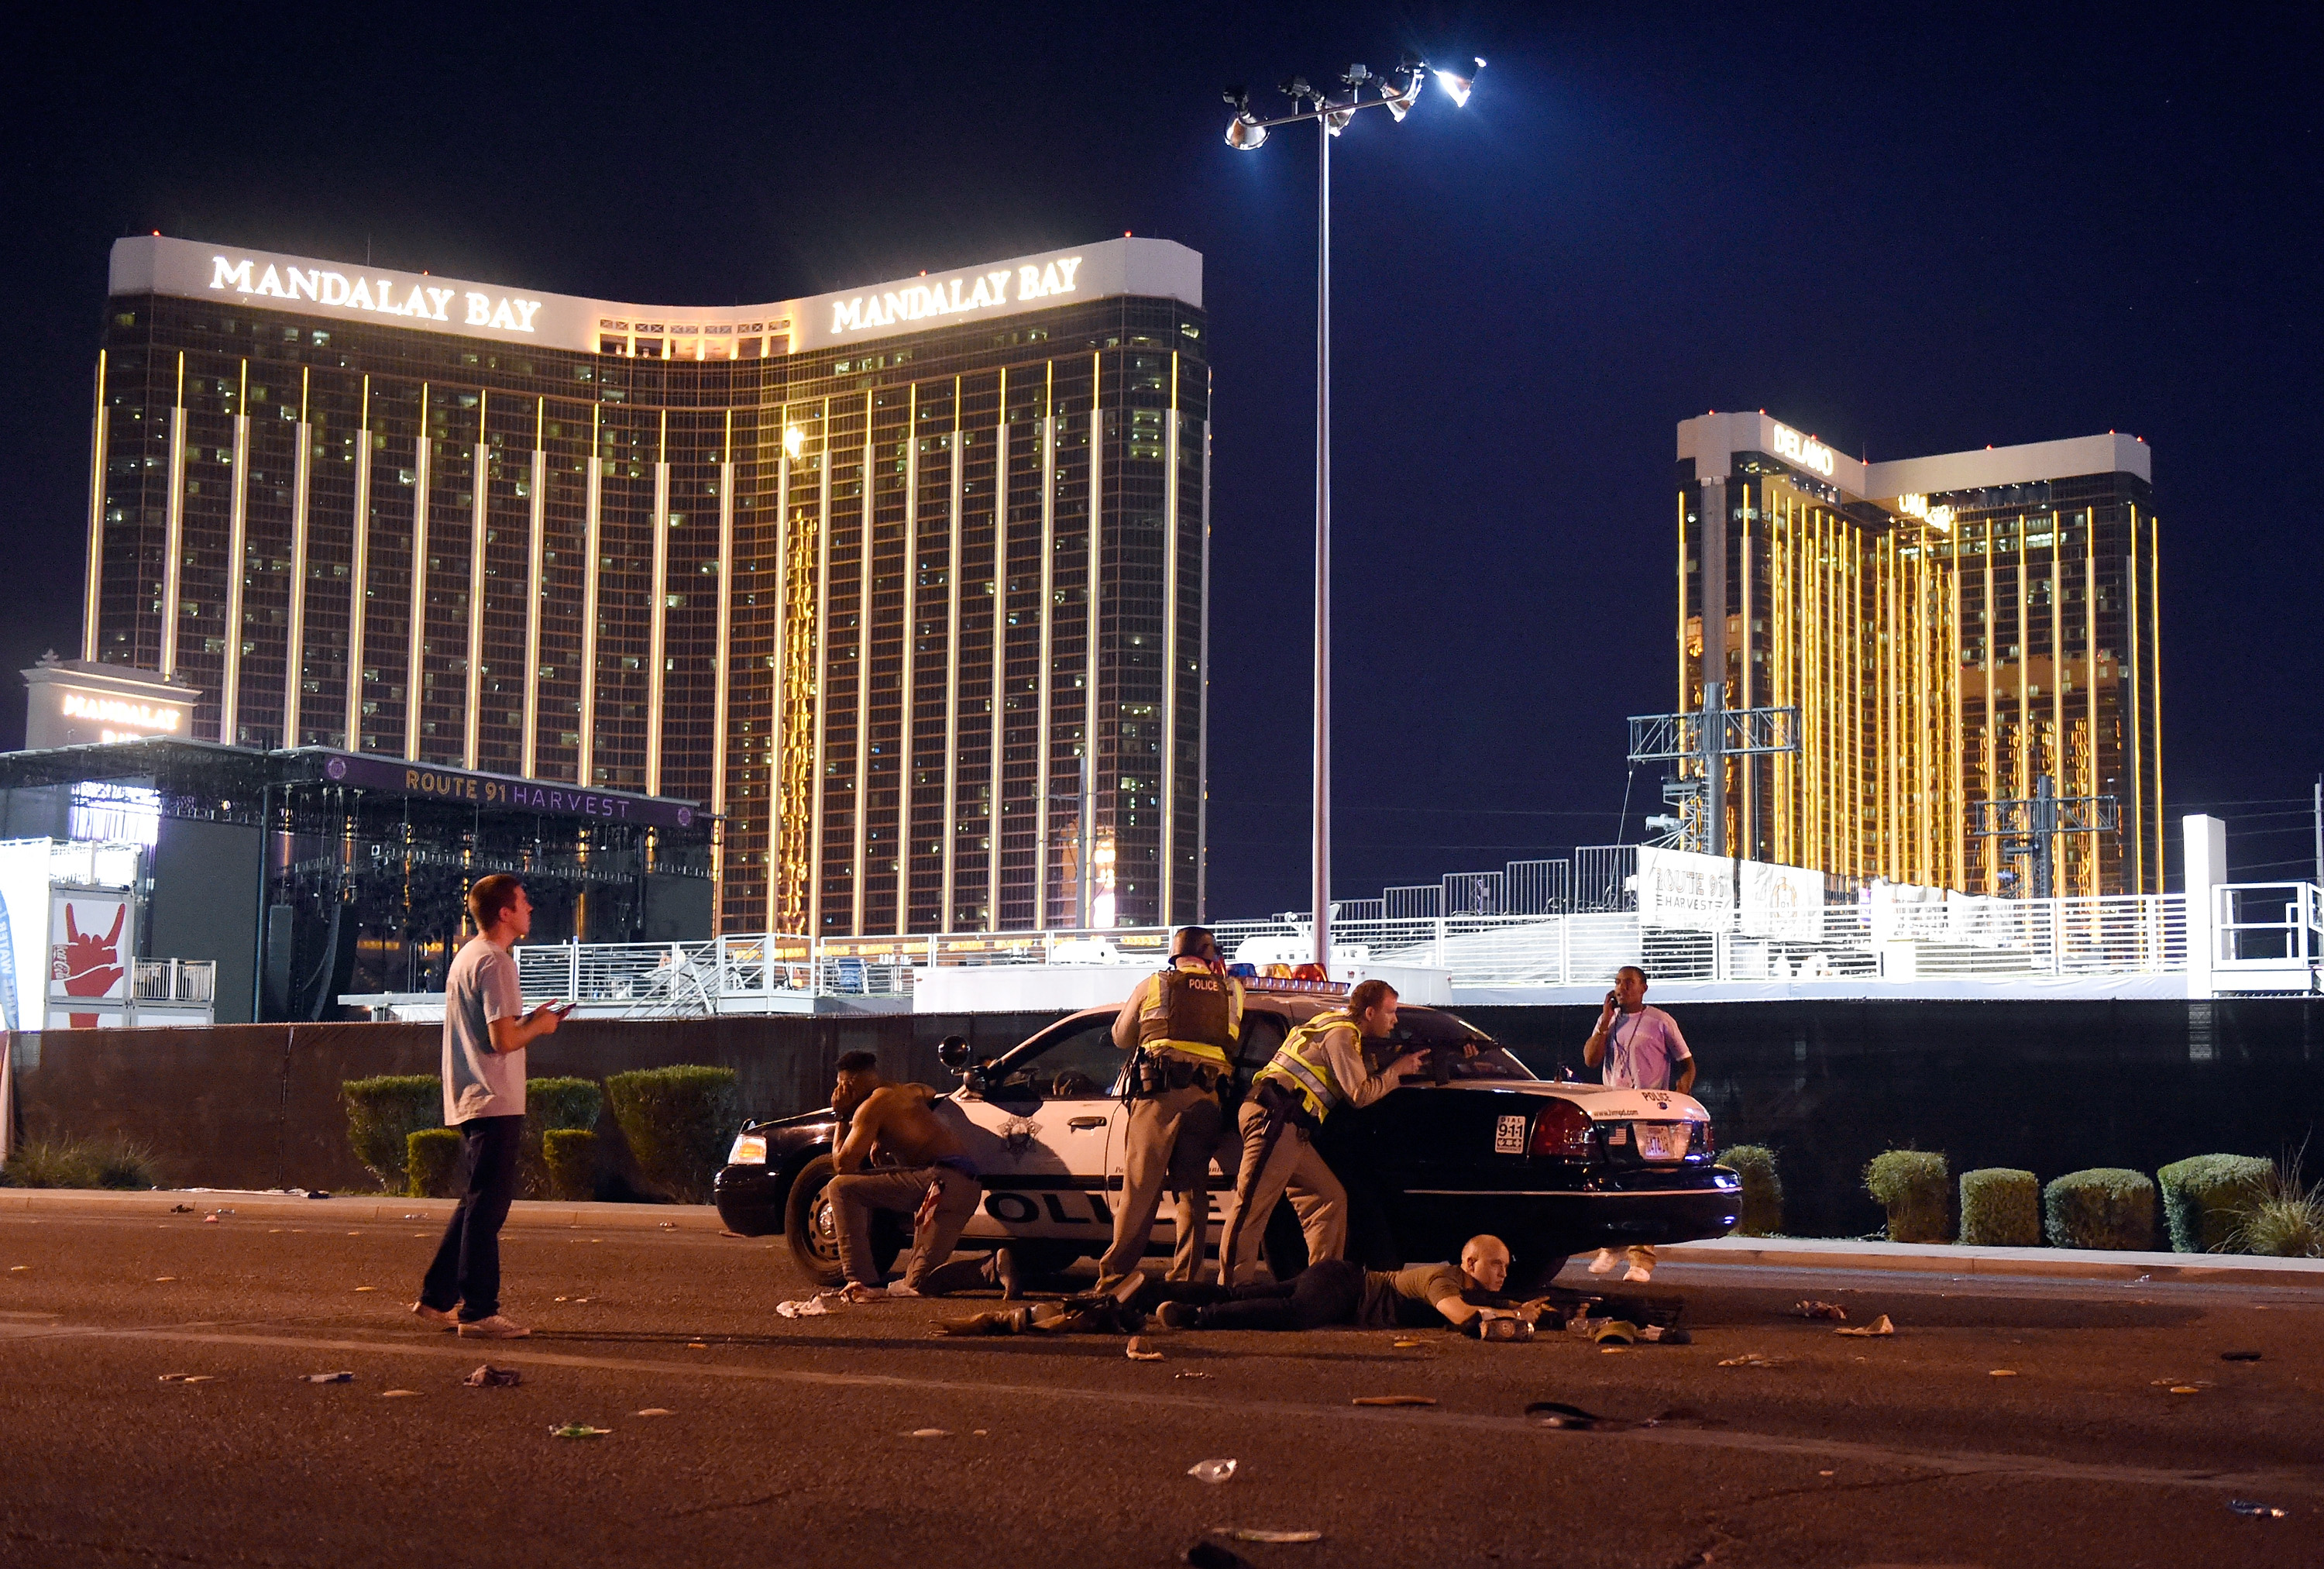 Las Vegas police stand guard along the streets outside the Route 91 Harvest Country music festival groundss of the Route 91 Harvest on October 1, 2017 in Las Vegas.